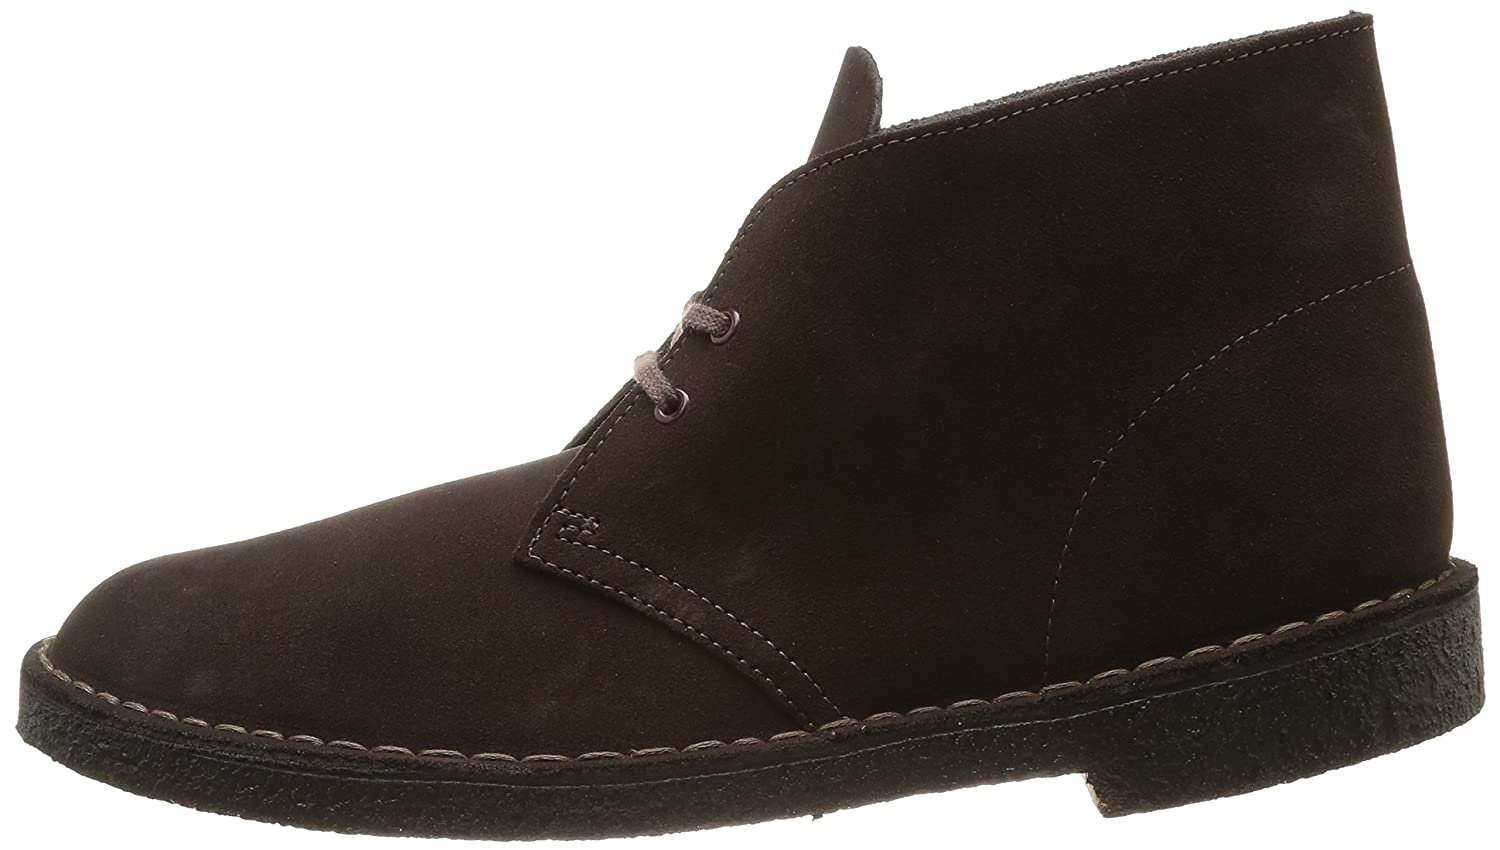 Clarks Originals Desert Boot, Herren Derby Schnürhalbschuhe, Braun (Brown Sde), UK) 47 EU (12 Herren UK) Sde), - e914fc